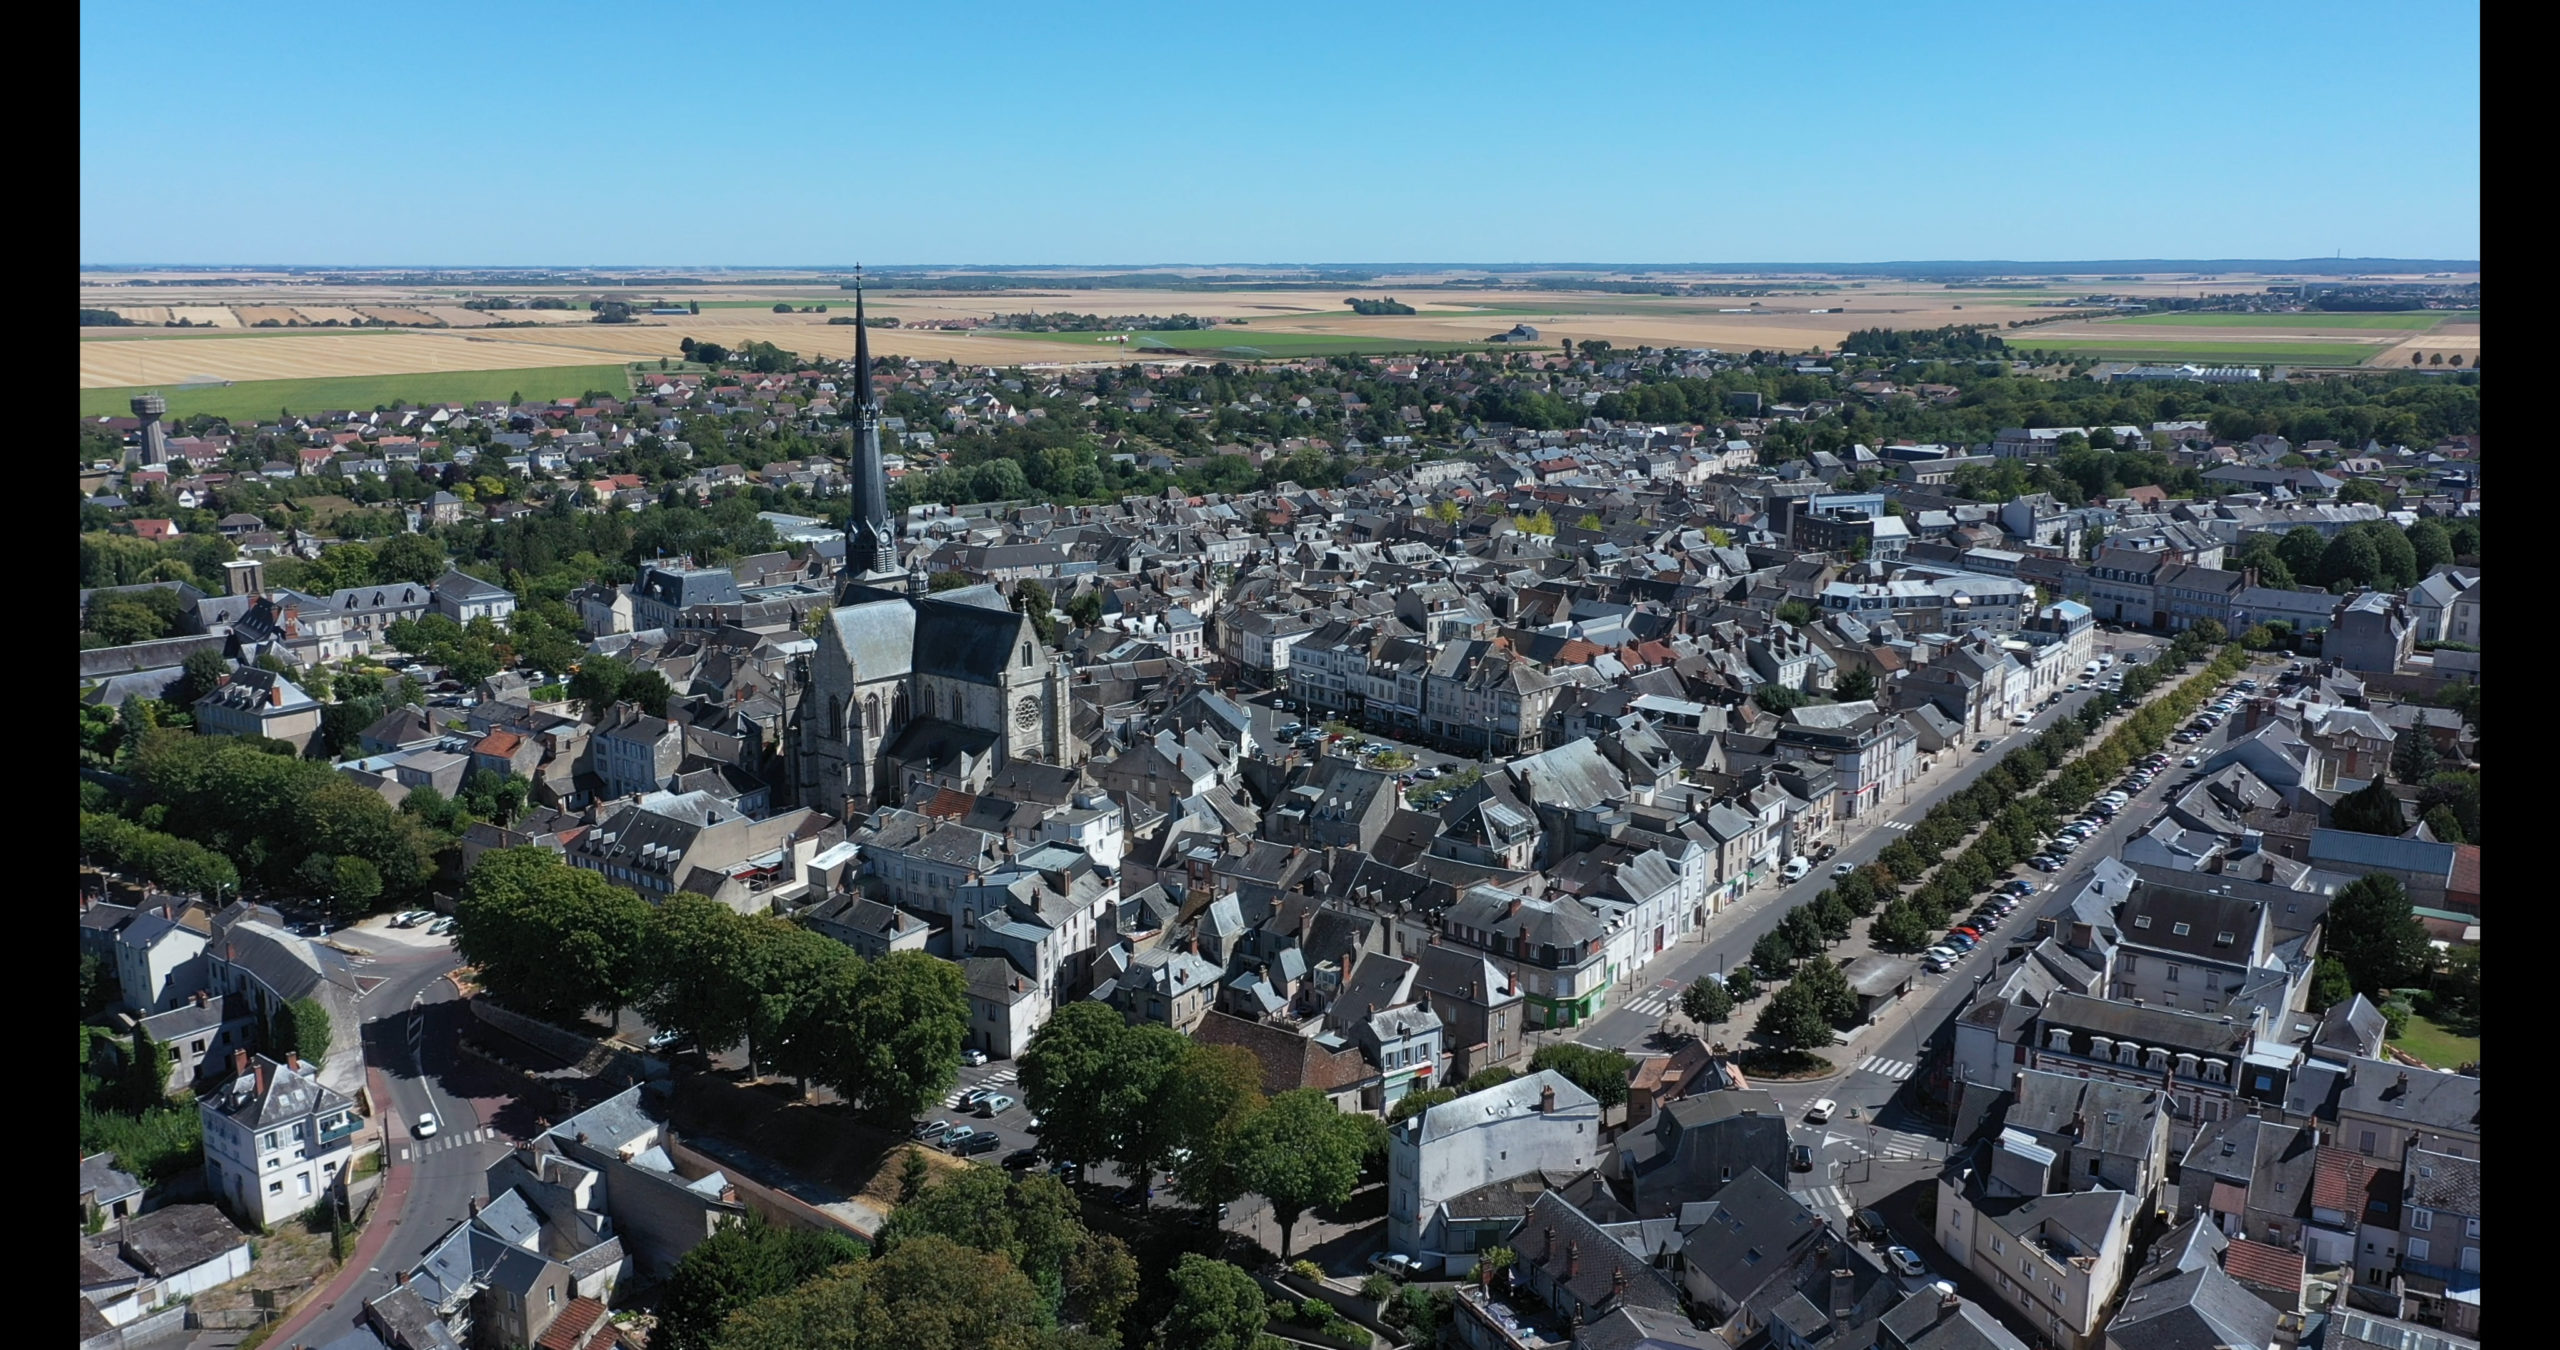 Visite de Pithiviers Pithiviers